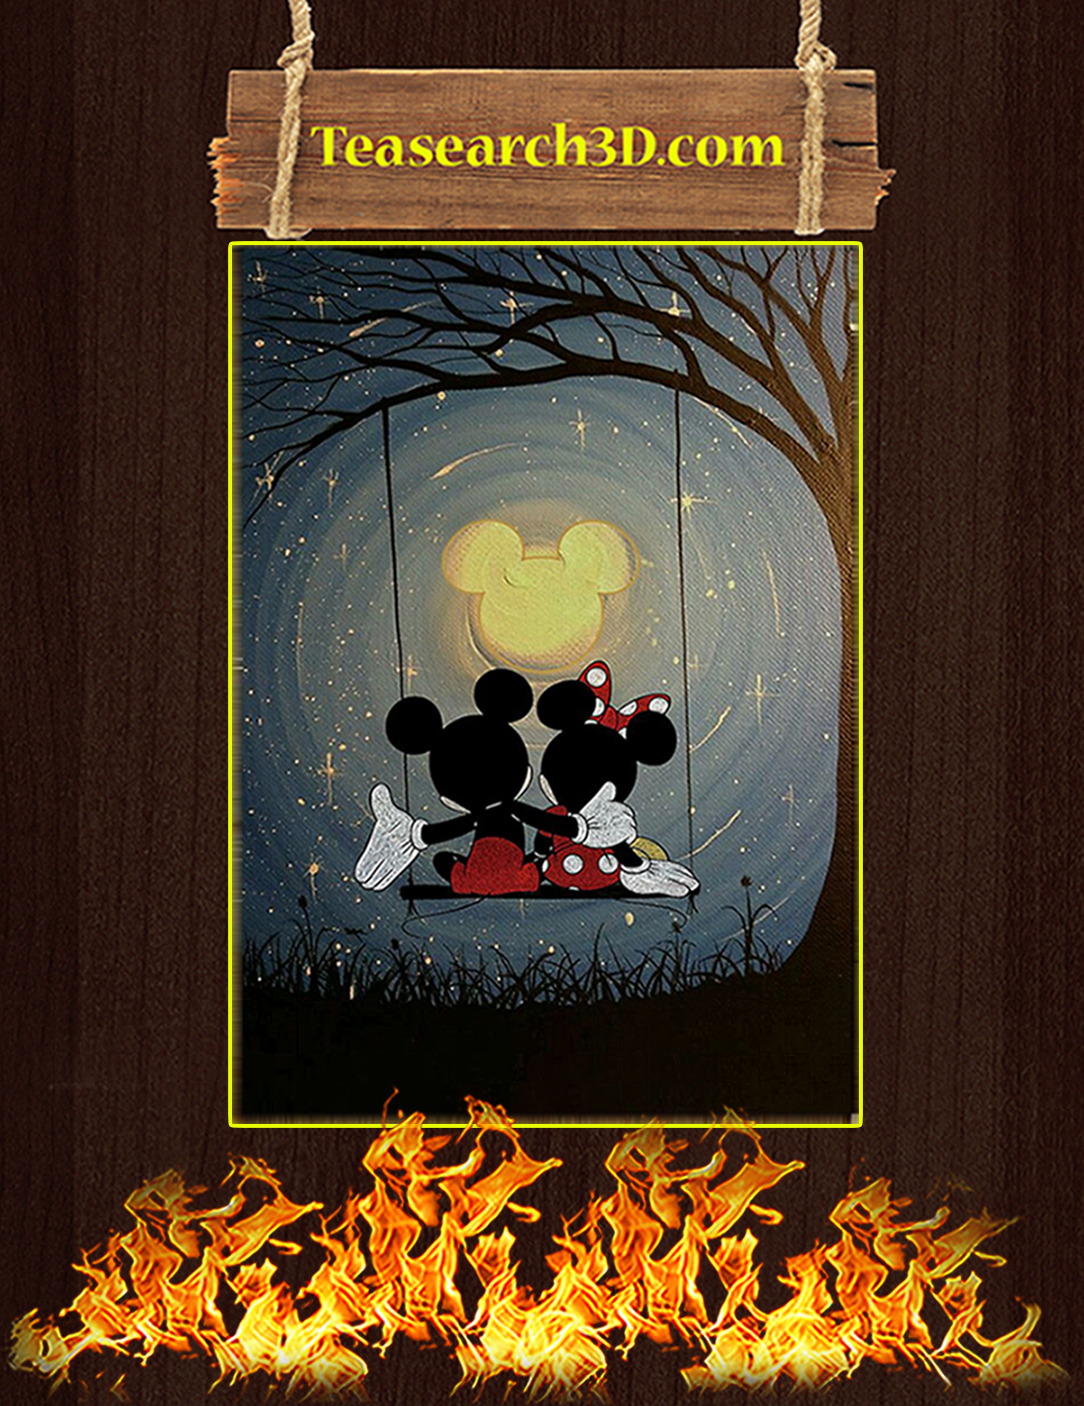 Mickey and minnie the moon poster A2